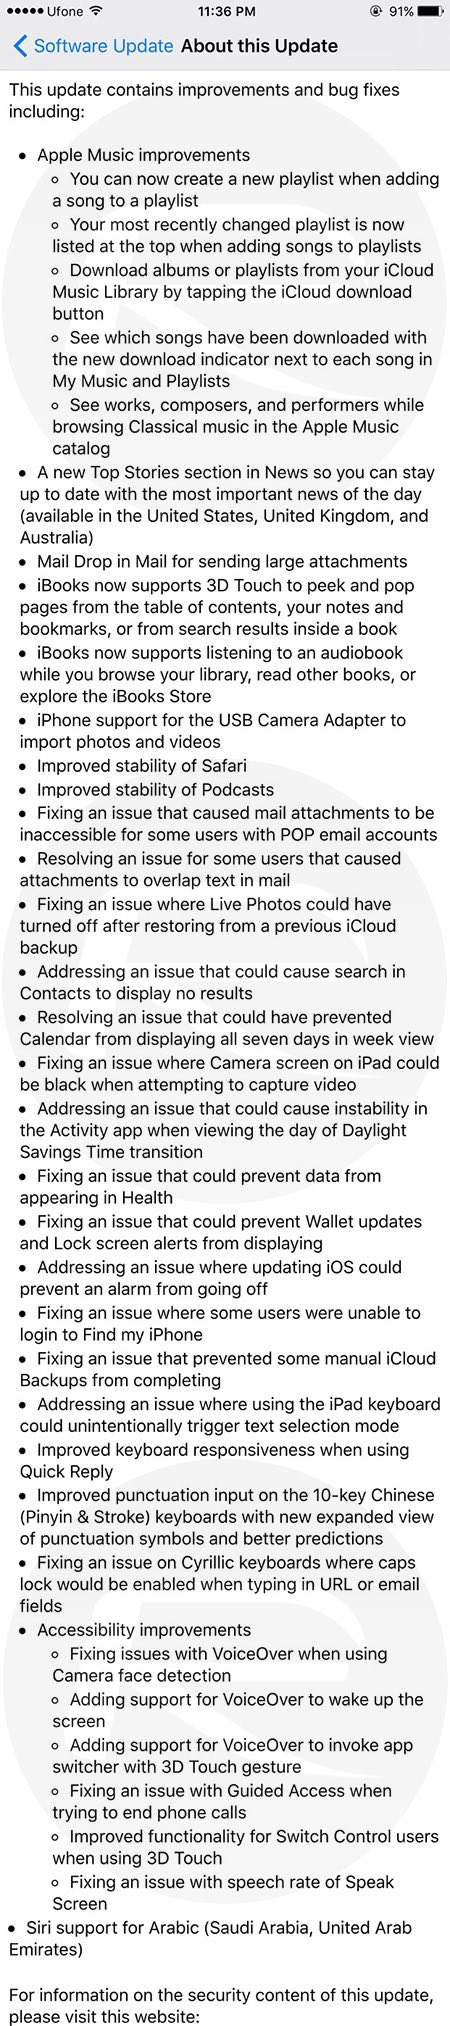 ios-9.2-changelog-updated2